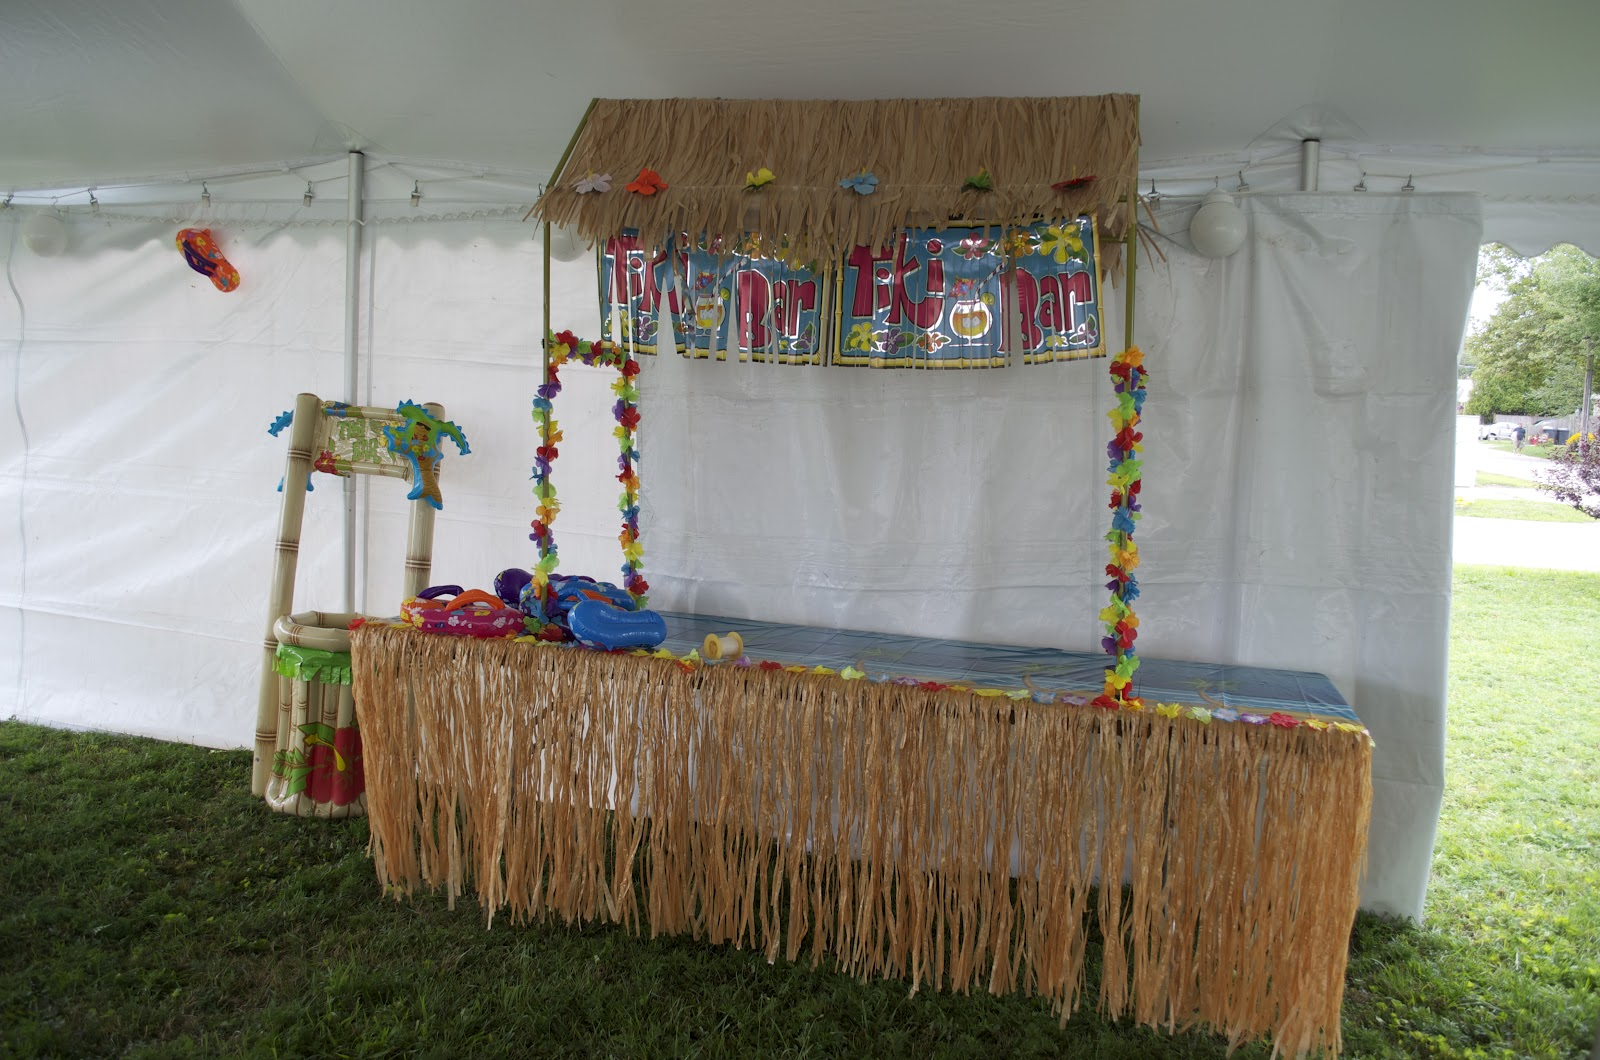 ... Mornings Were Utilized For Shopping, Nights For Food Preparation. On  Monday Night, We Put Together The Straws, Lanterns And The Table Top Tiki  Bar.